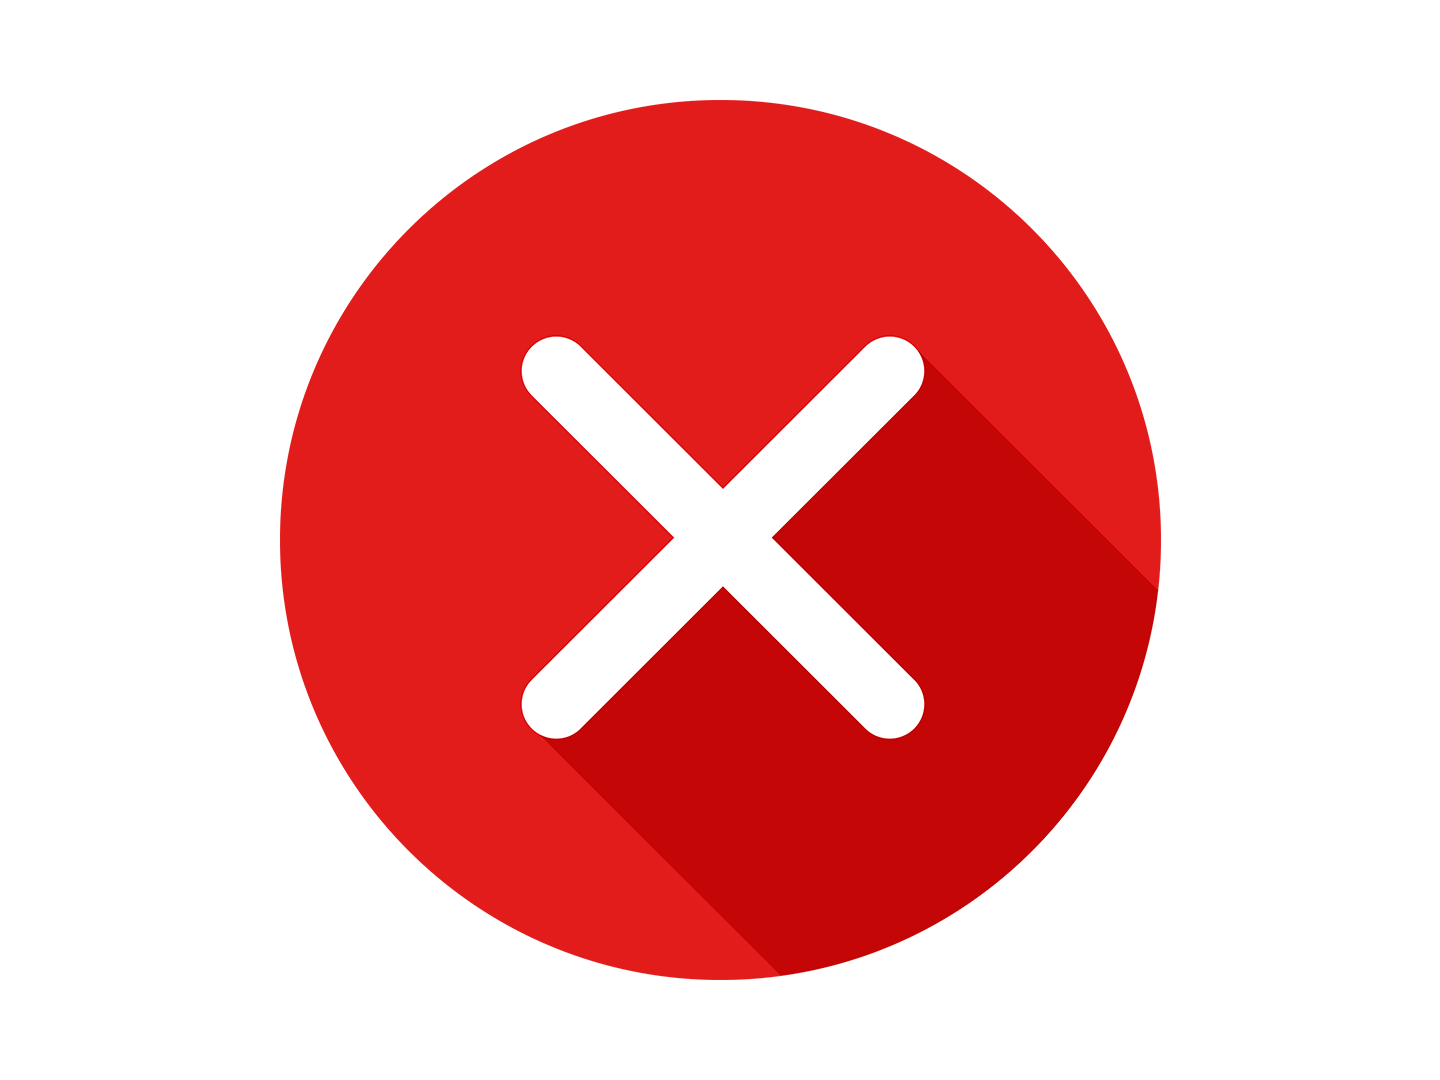 X Delete Round Flat Icon Free Download by Icons by Alfredo.